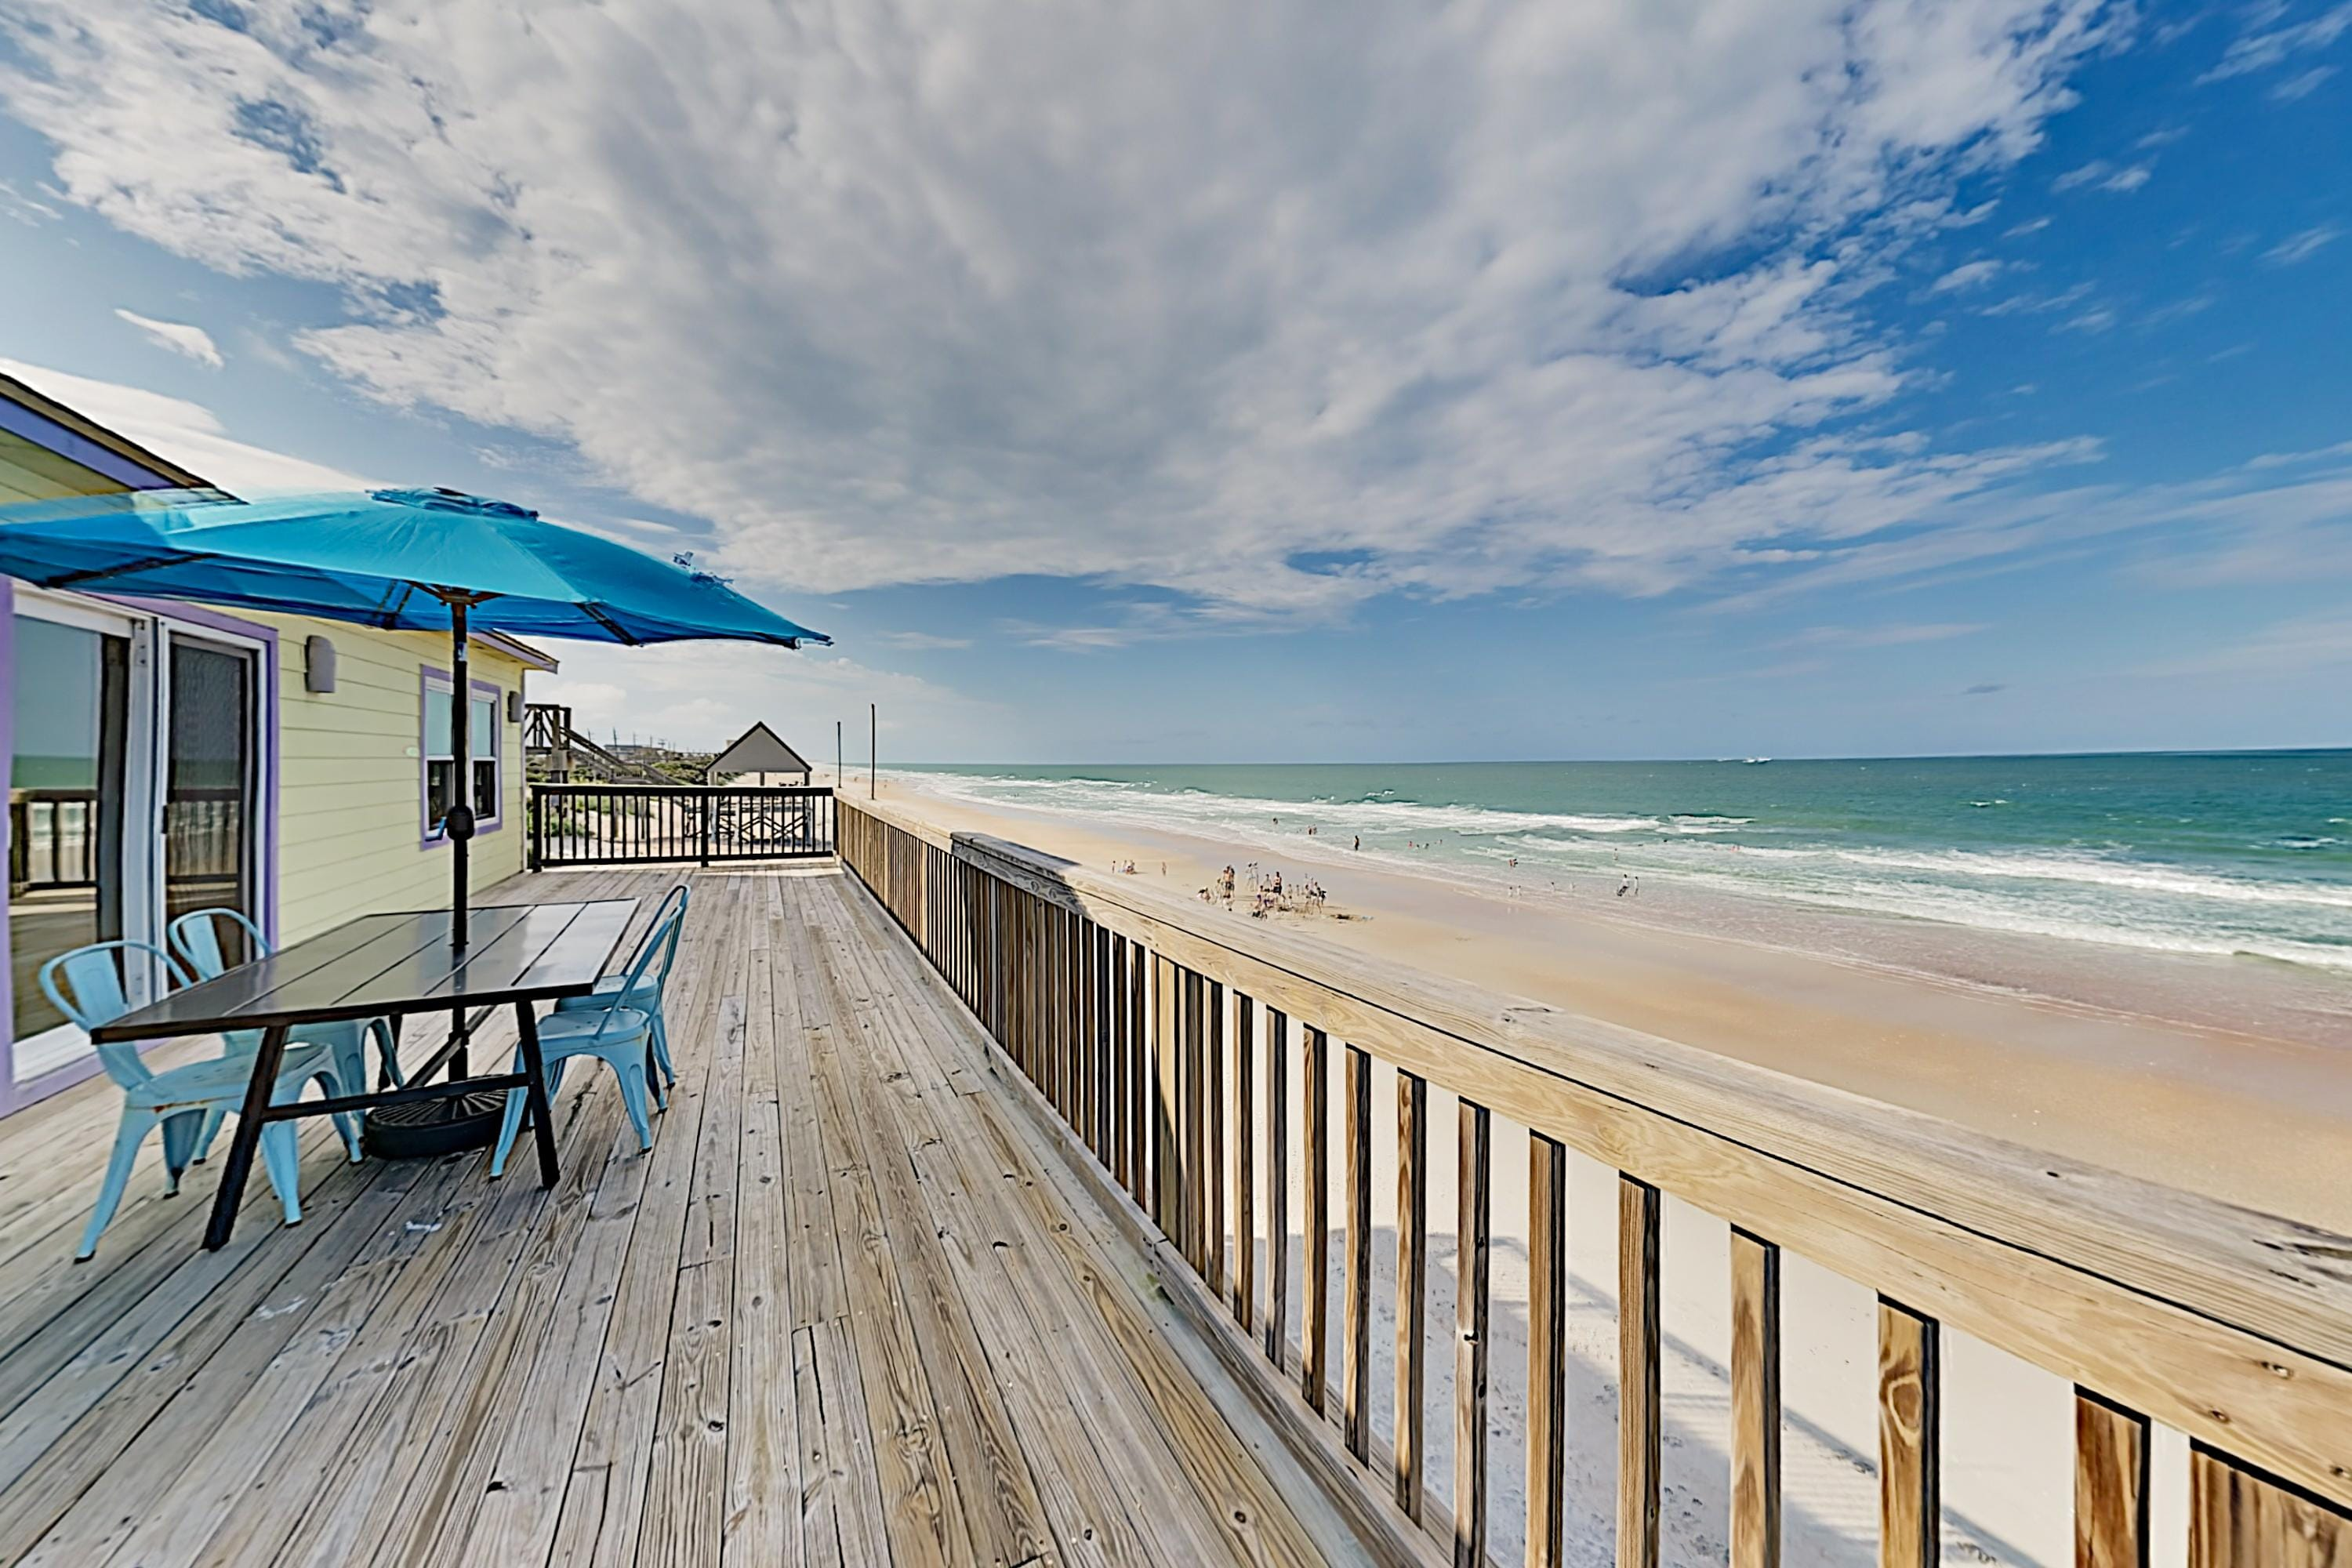 Property Image 1 - Hercules by the Sea: Beachfront, Huge Deck & Patio